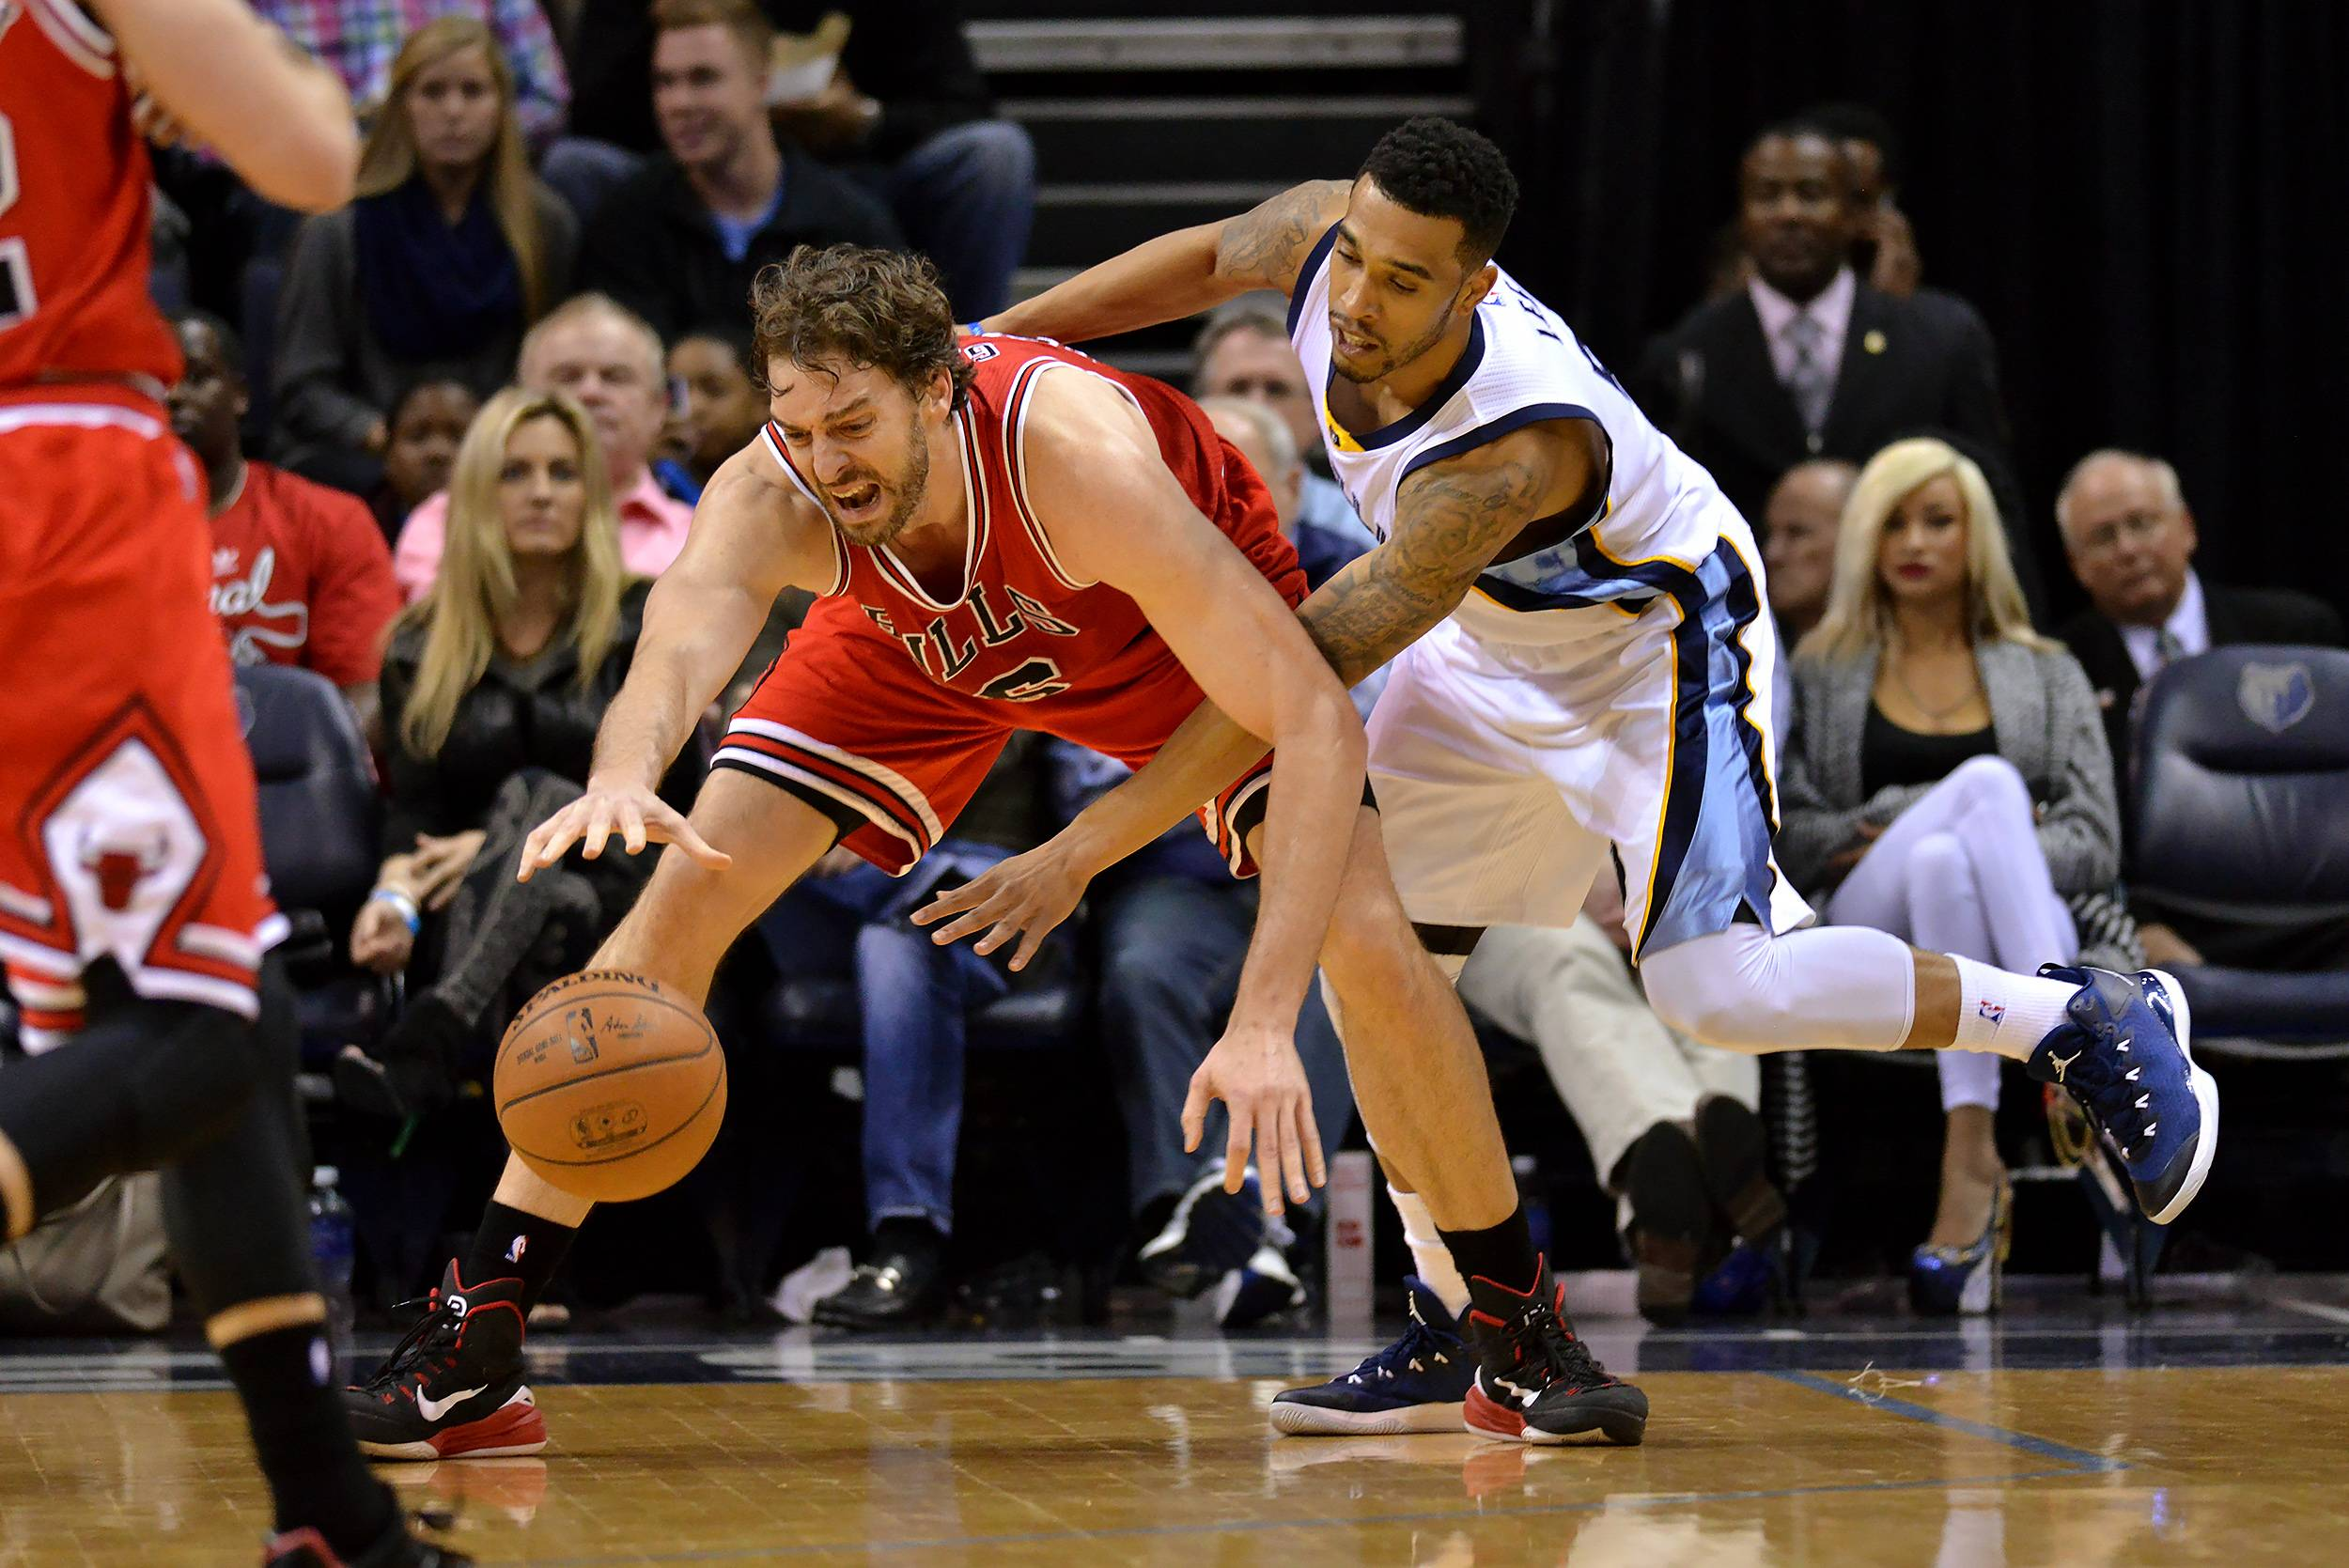 Bulls forward Pau Gasol, center left, struggles to control the ball against Memphis Grizzlies guard Courtney Lee in the second half of an NBA basketball game Friday, Dec. 19, 2014, in Memphis, Tenn. The Bulls won 103-97.